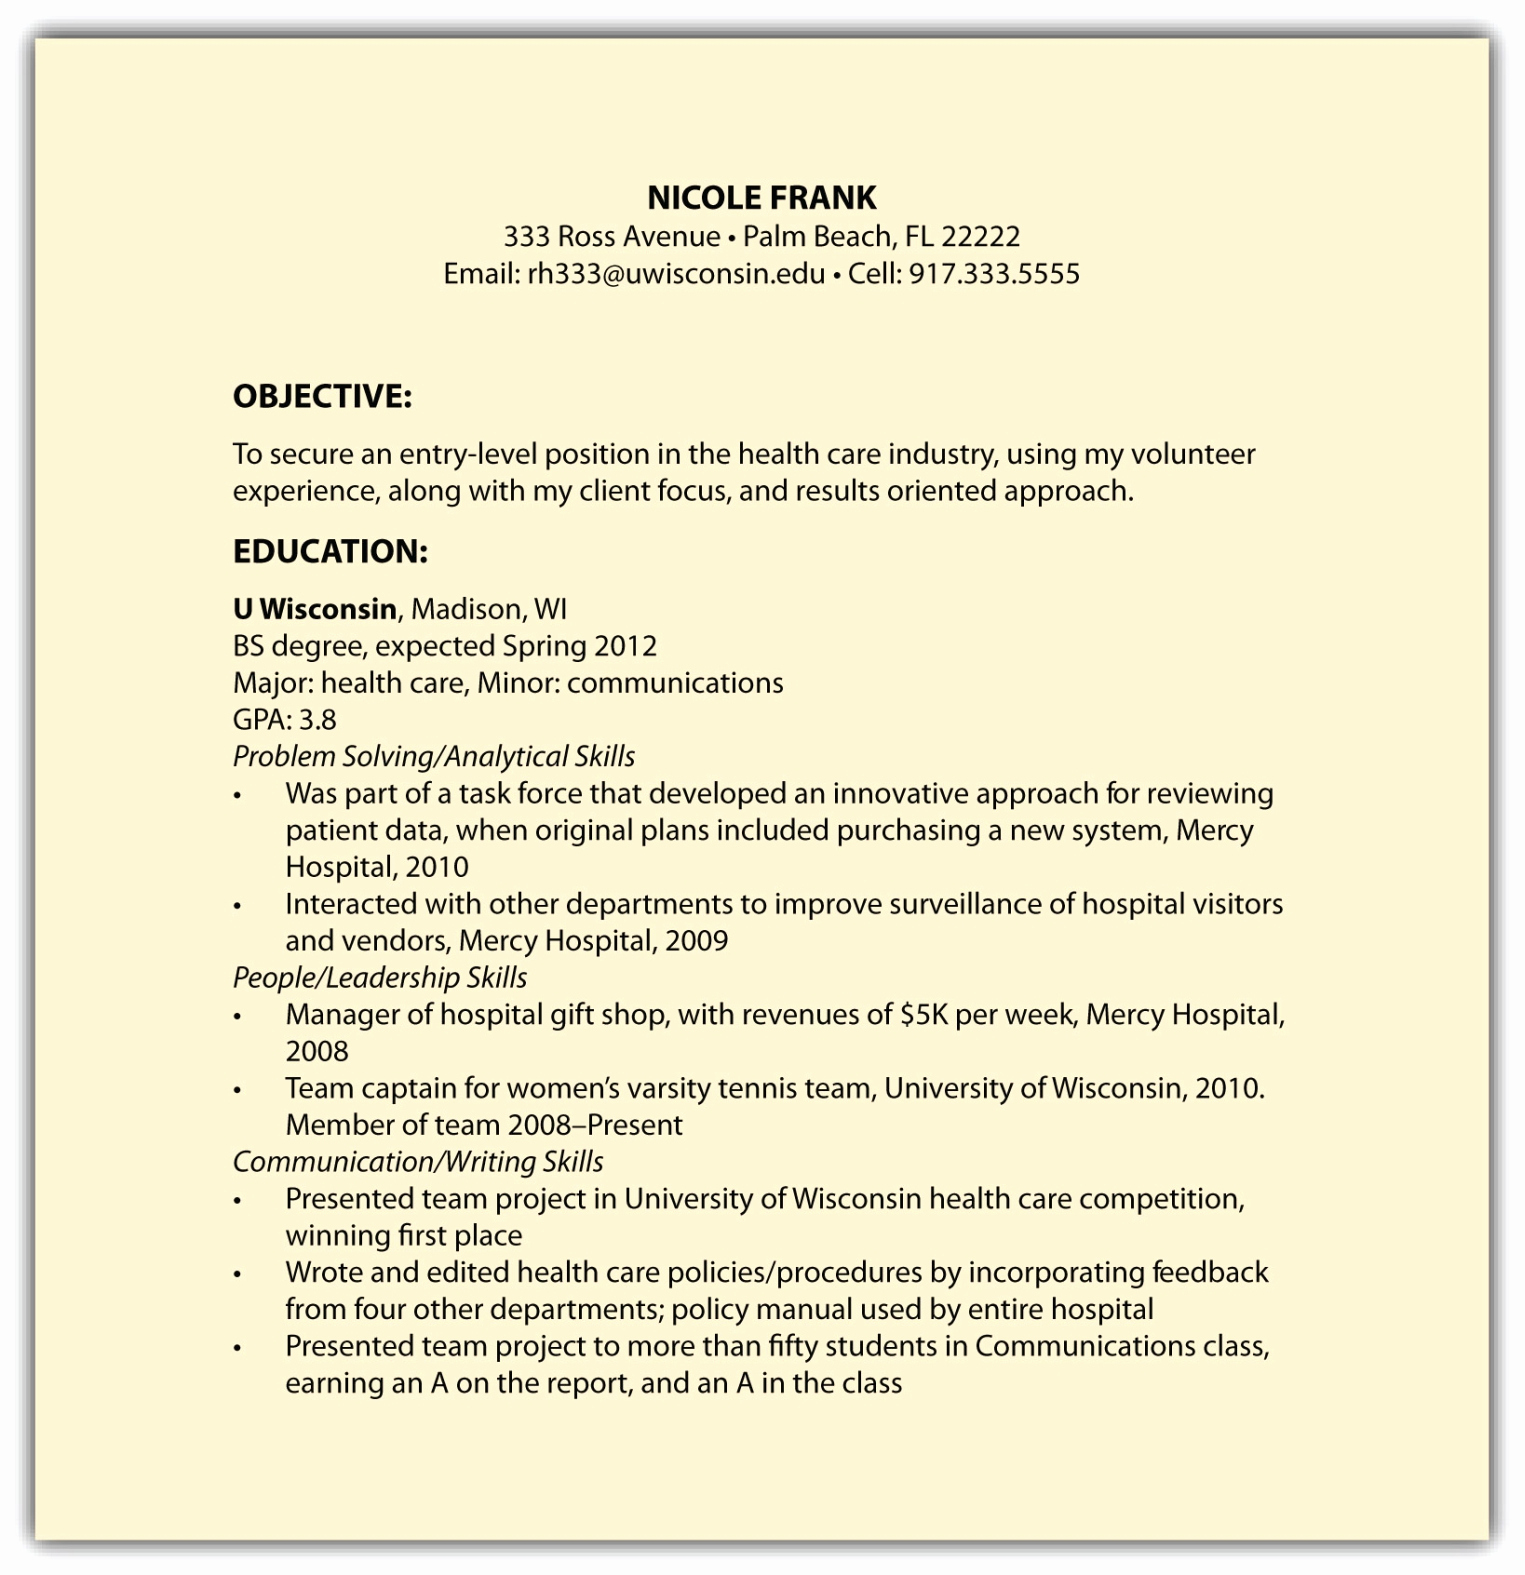 Example Of Functional Resume Awesome Other Résumé formats Including Functional Résumés